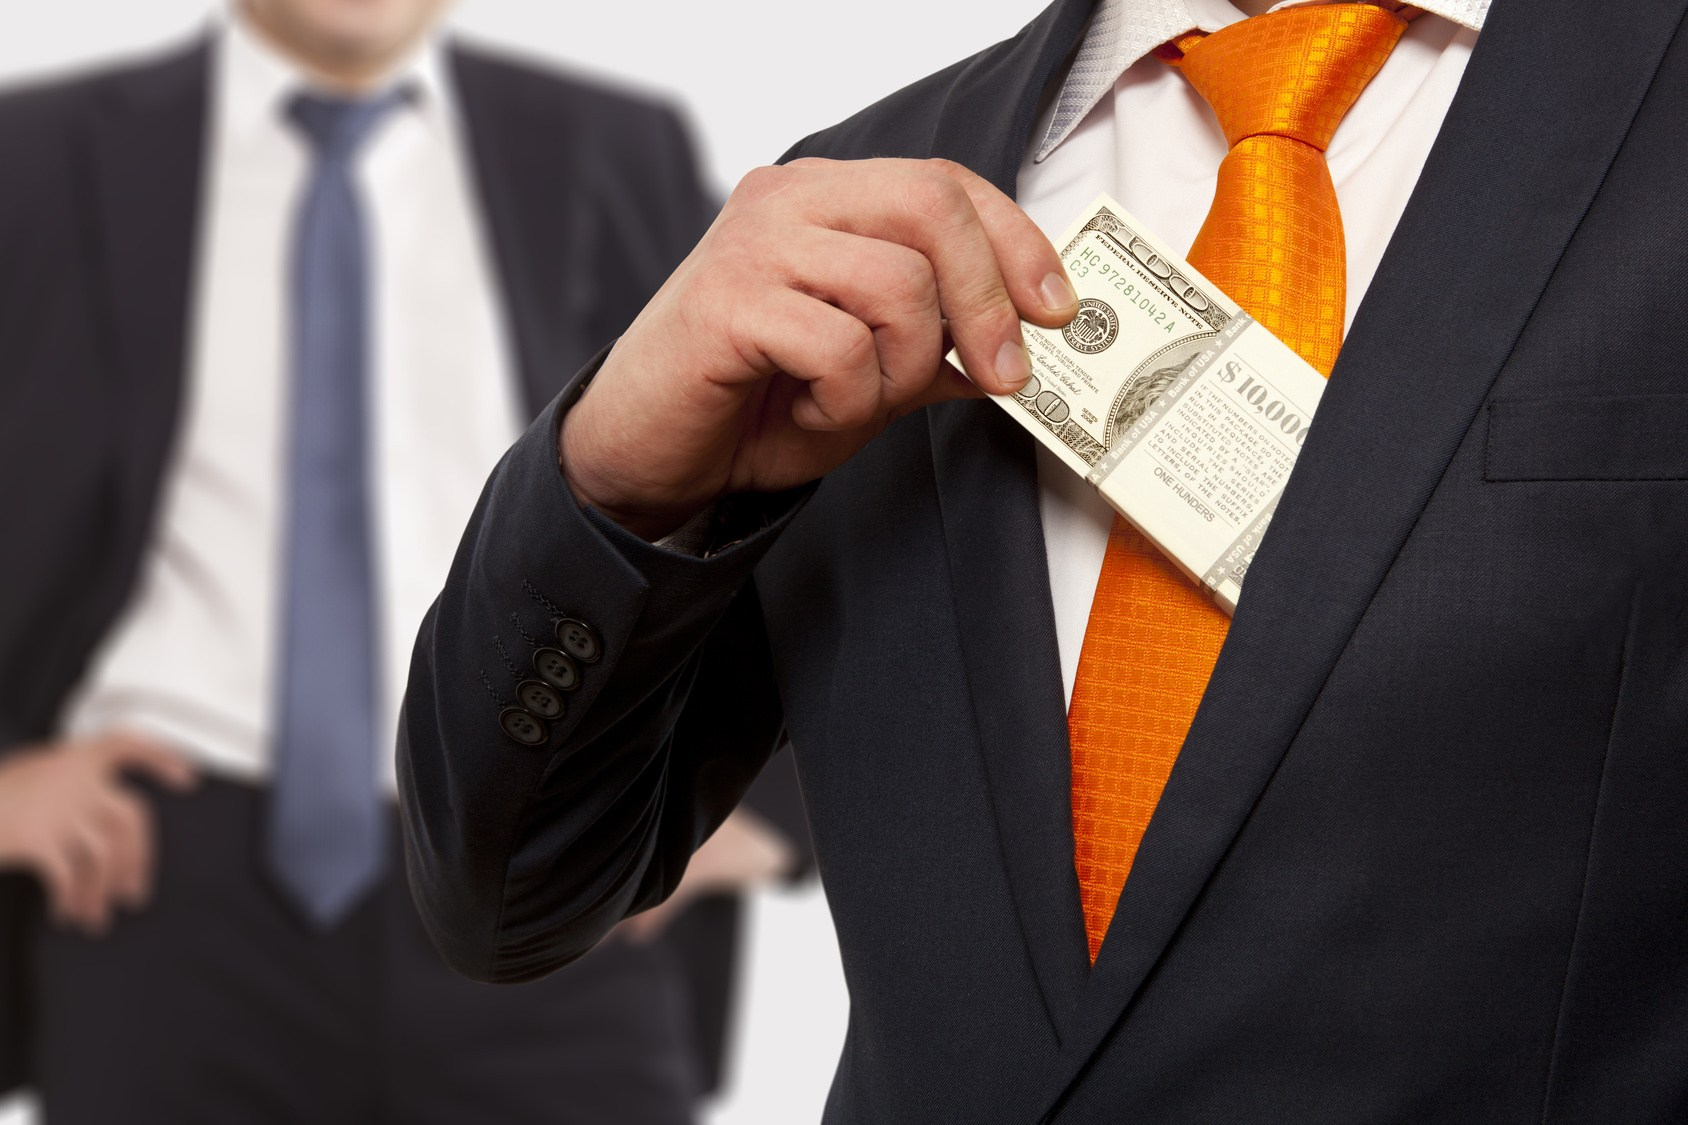 White Collar Crime? Get the defense you need from OKC Defense Attorney Carter Jennings.